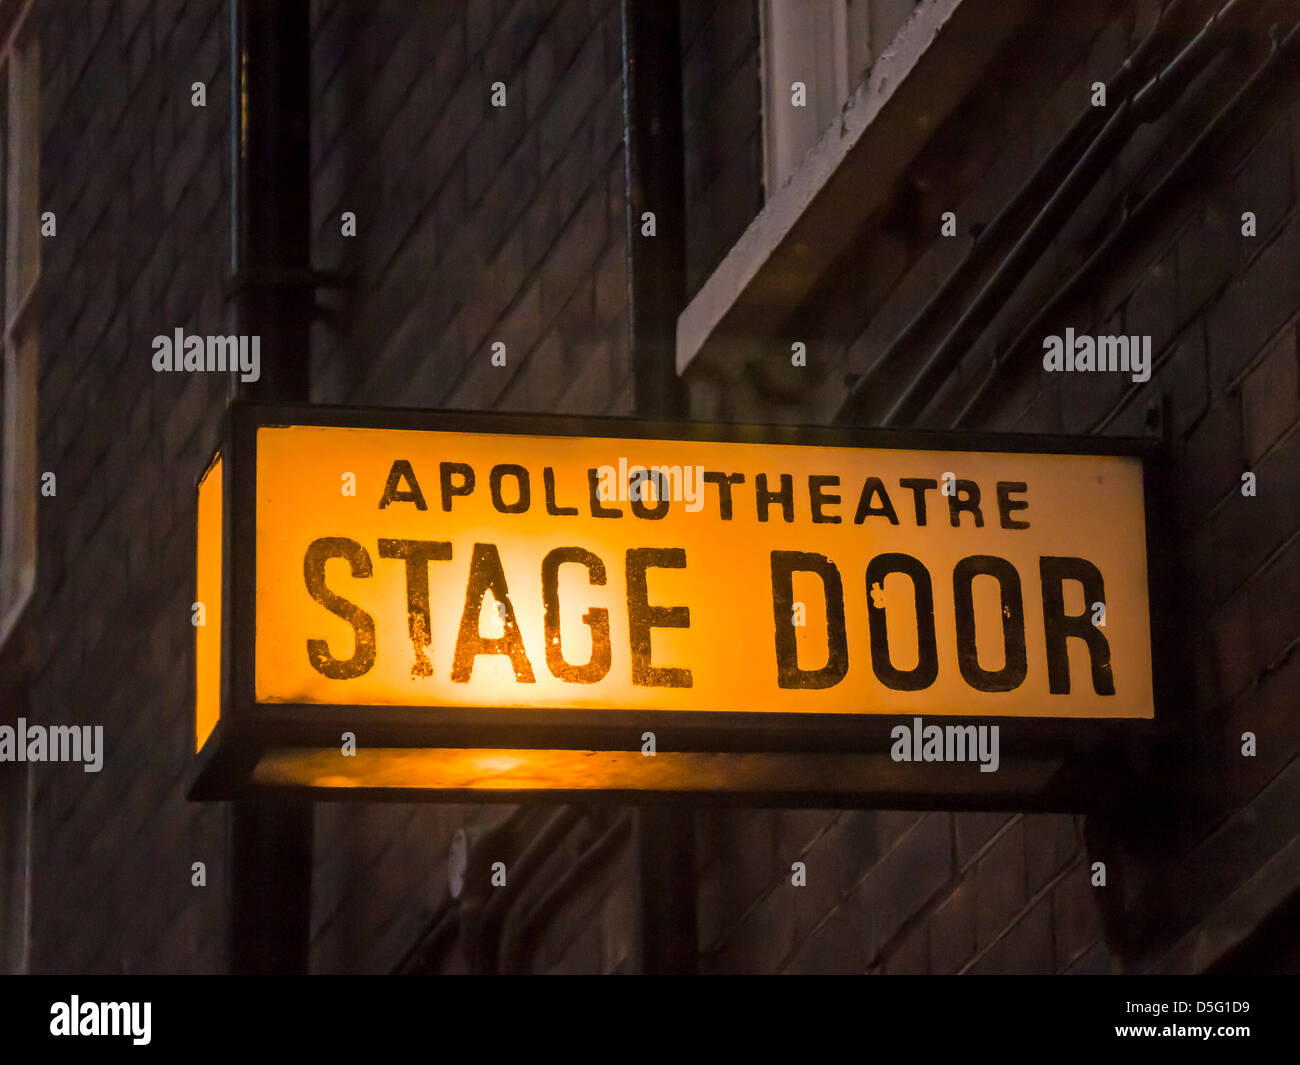 Sign at the Stage Door of the Apollo Theatre, London - Stock Image